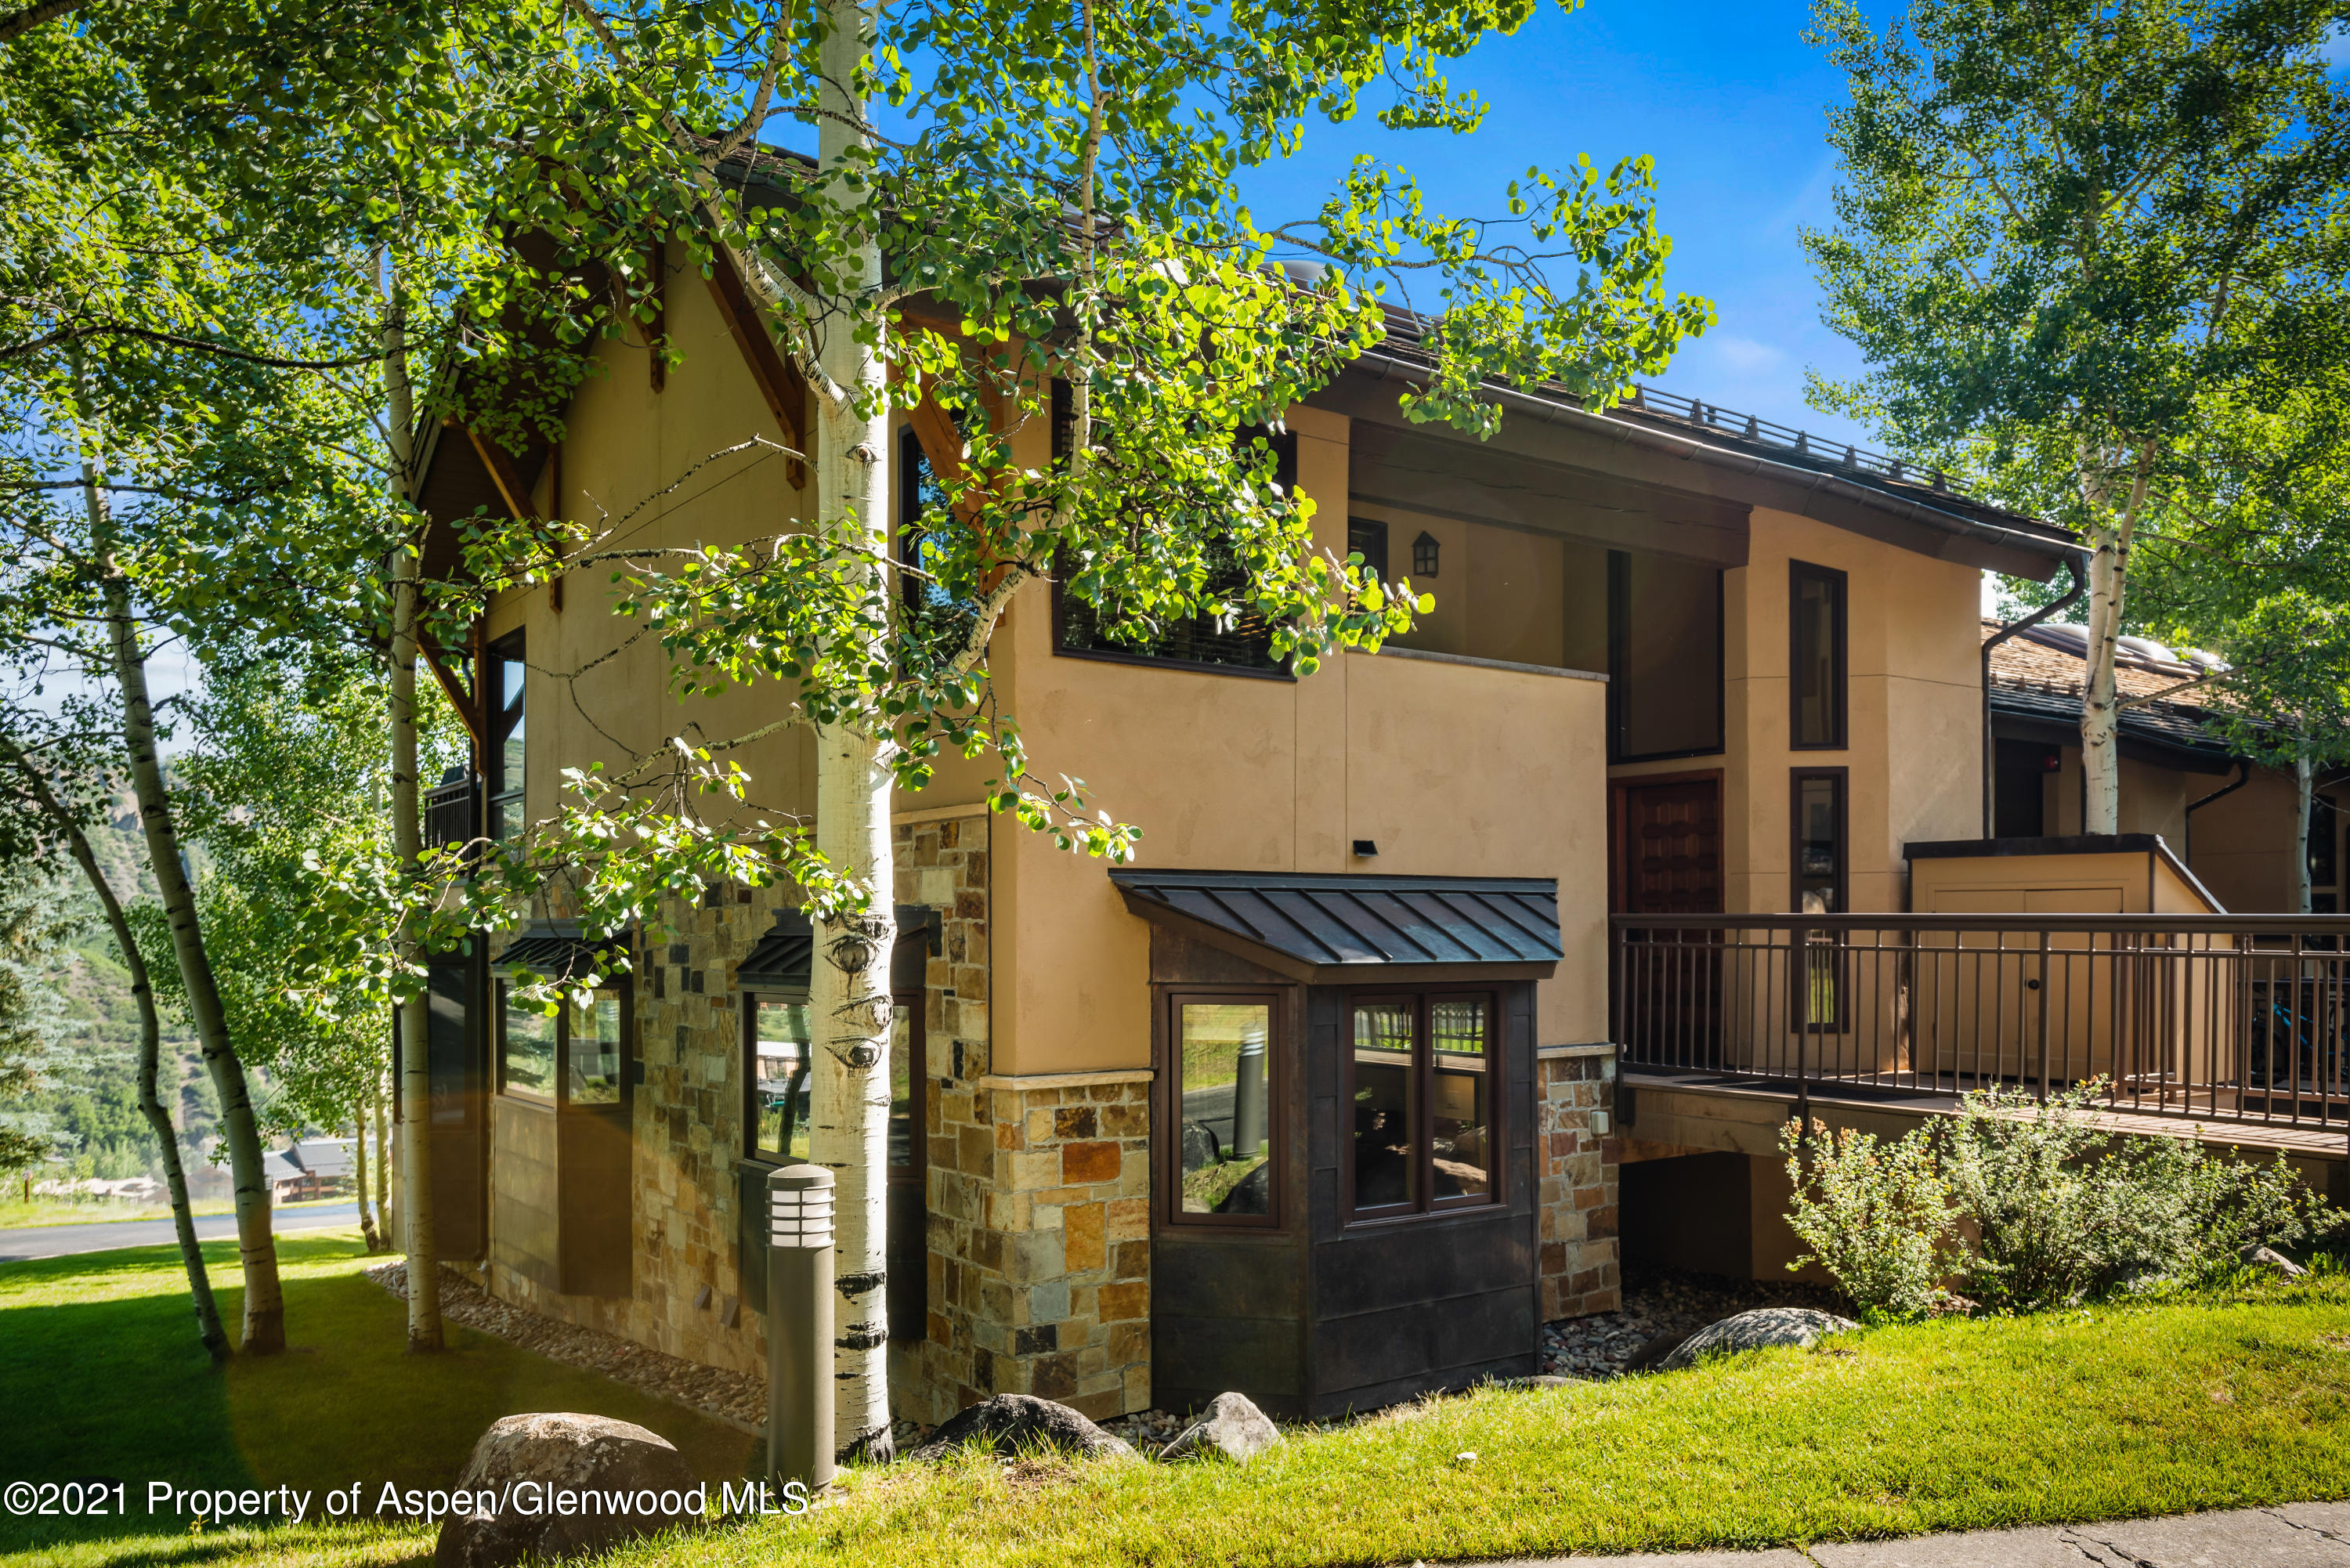 Fabulous ski in/out townhome centrally located on Snowmass Ski area.  Spacious 2 bedroom/ 3 bath unit with 3 separate open living areas.  This home is an end unit with extra windows to make it light and bright adding to spacious living  Tons of extra storage.  Easy walk across Fanny Hill to the Village Mall with shops and restaurants.